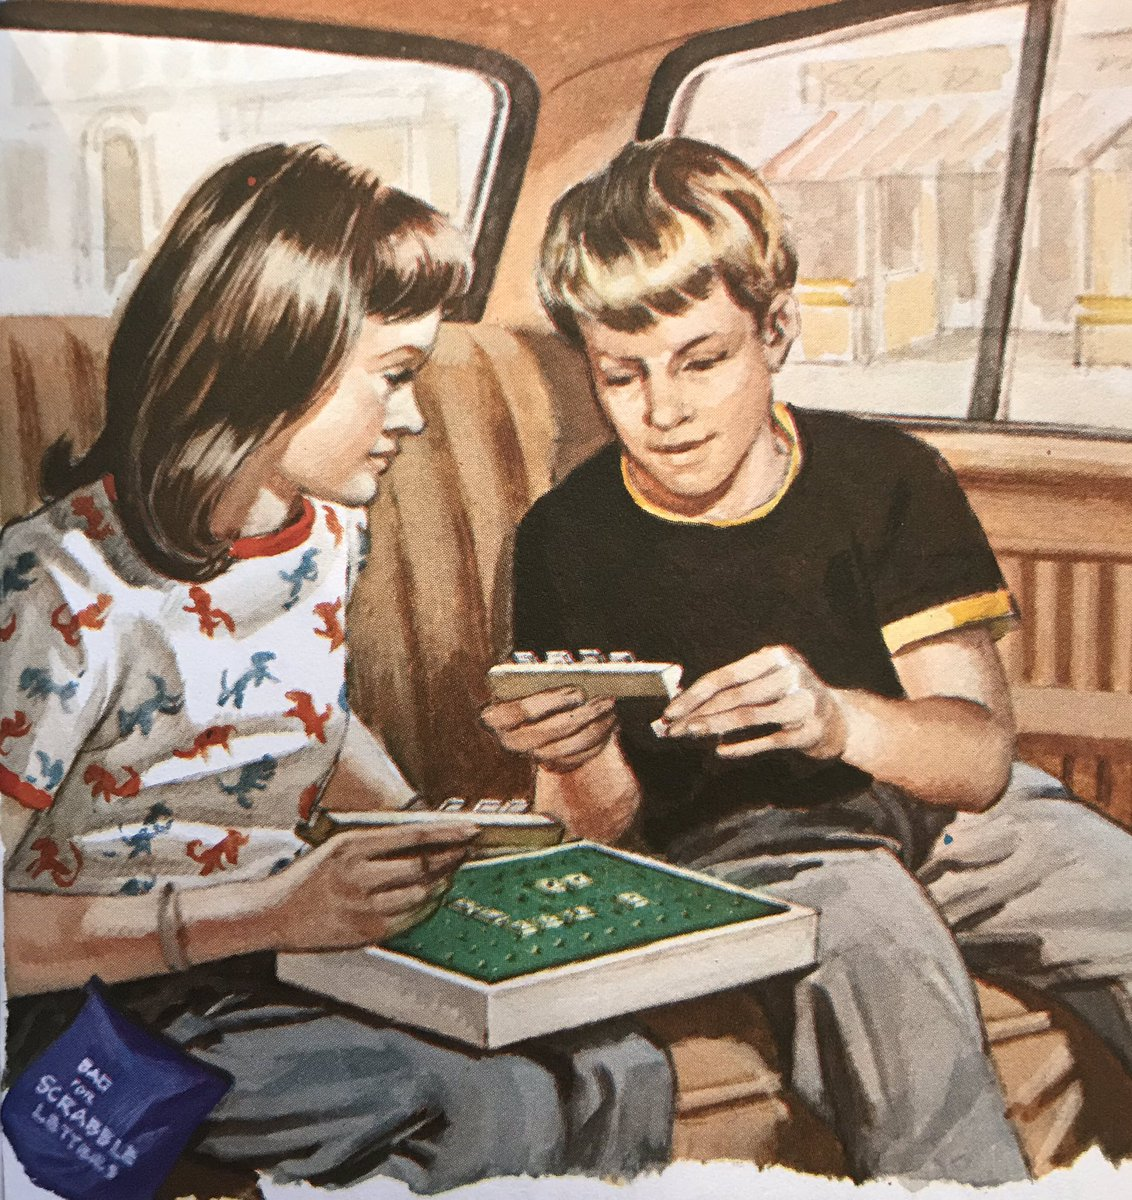 In-car entertainment, 1978, and the rules of 'Car Cricket' #EricWinter